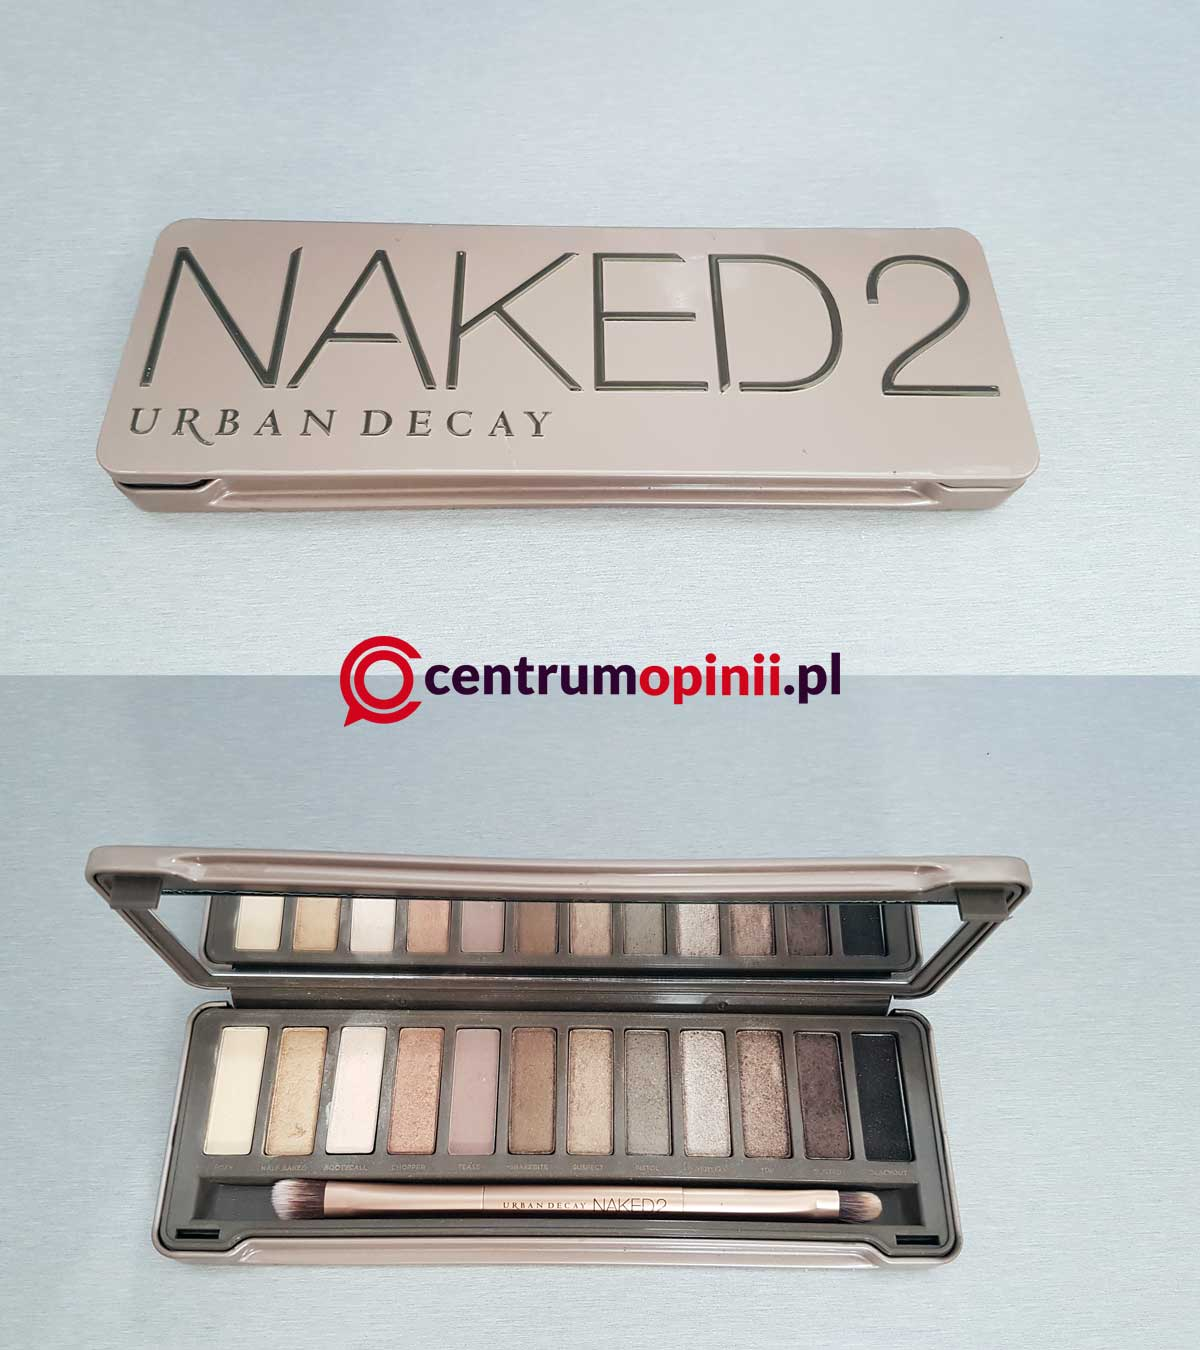 Urban Decay Naked 2 Opinie